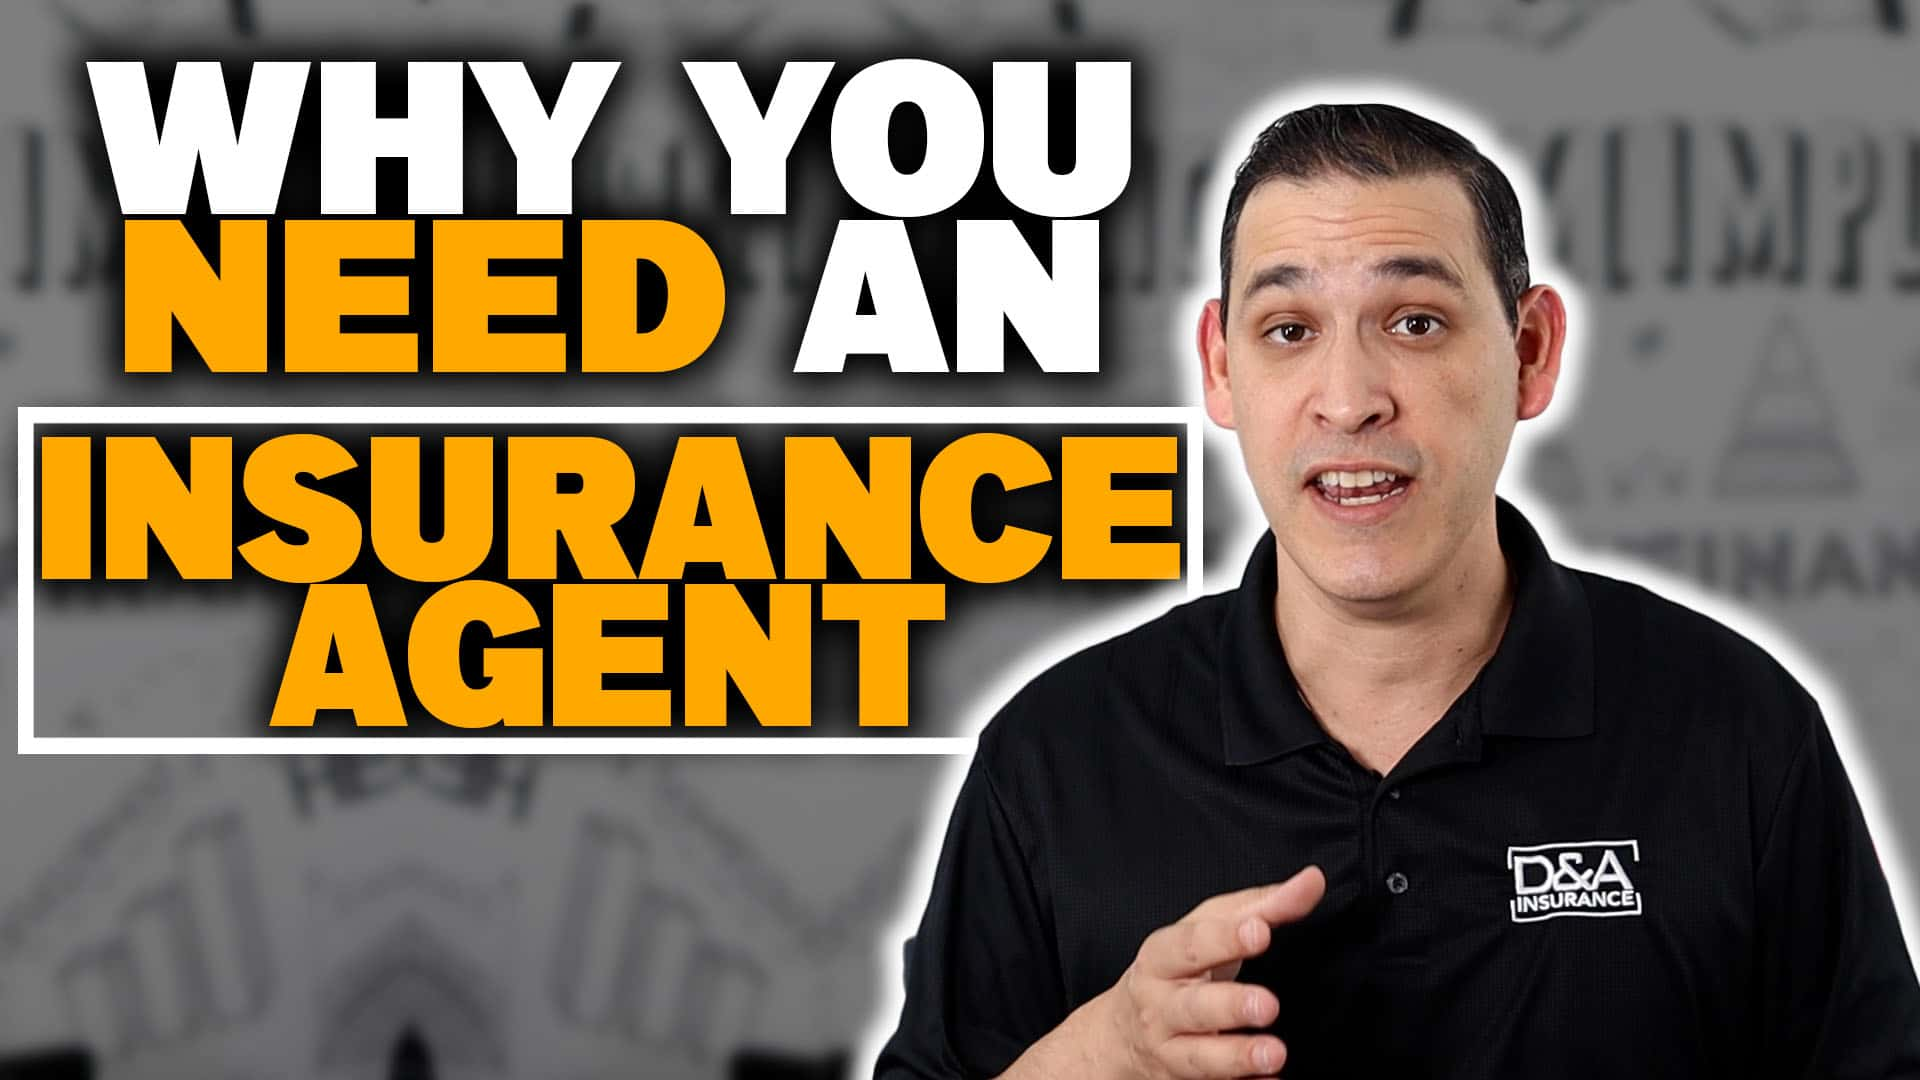 Why You Need an Insurance Agent to Buy Insurance